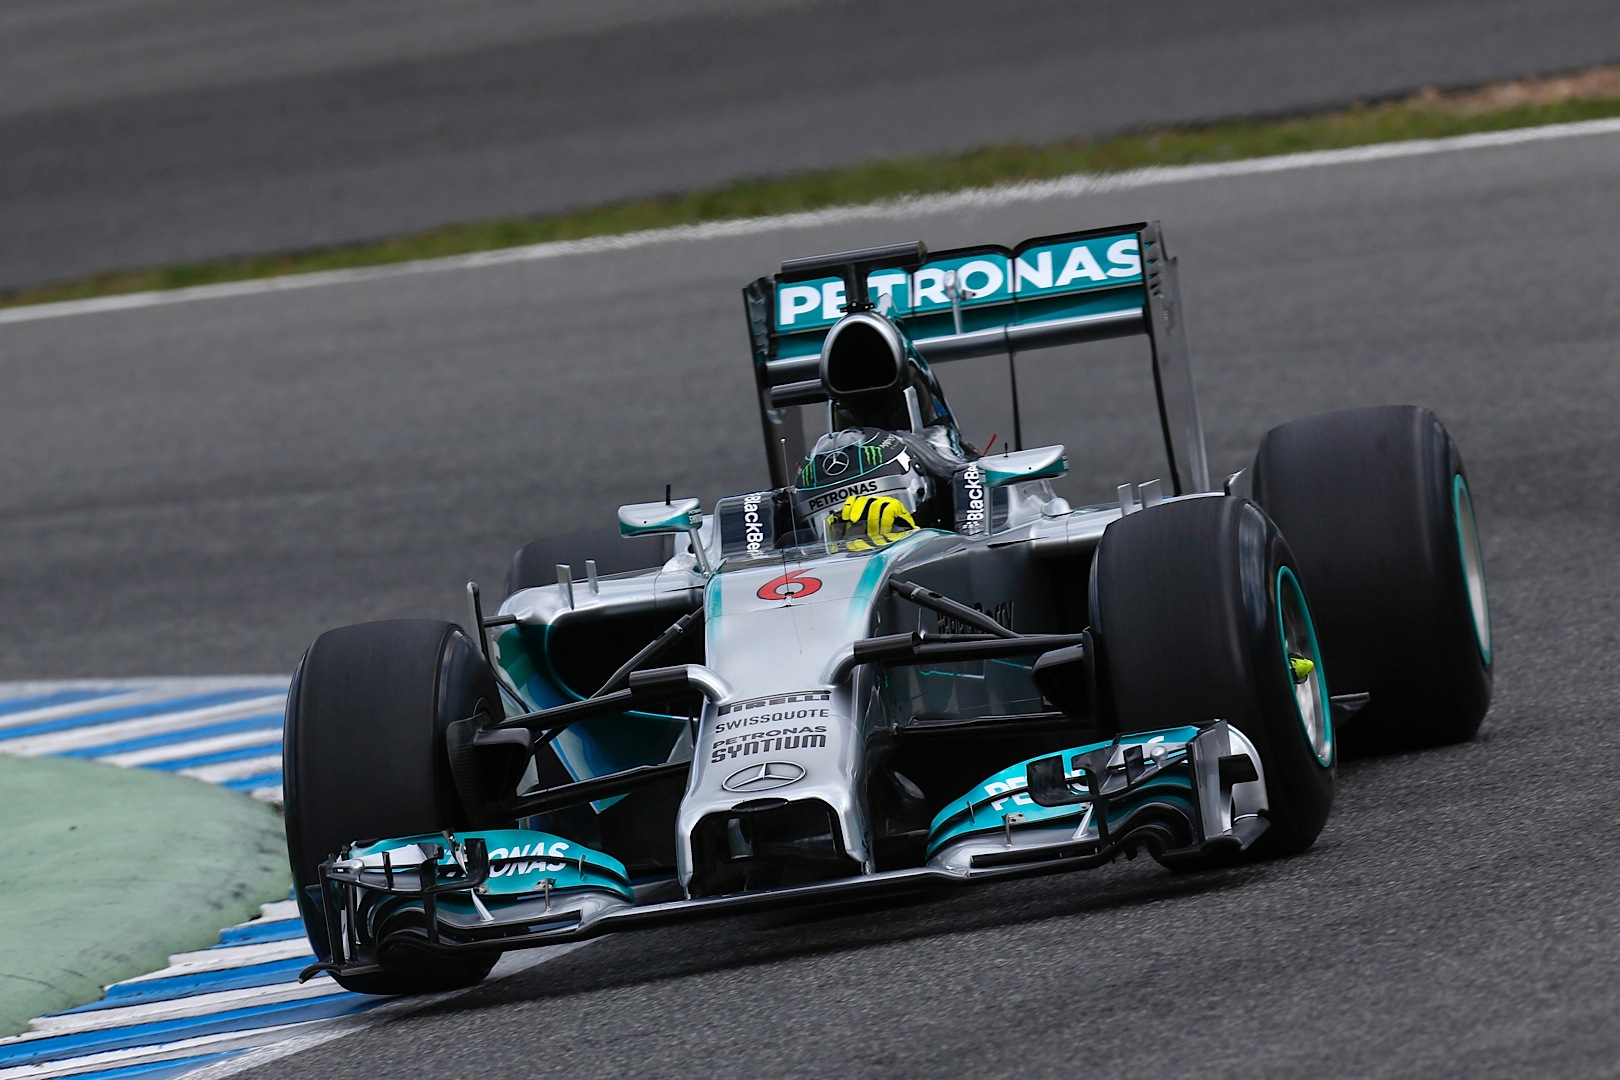 mercedes amg petronas concludes day three of testing at. Black Bedroom Furniture Sets. Home Design Ideas